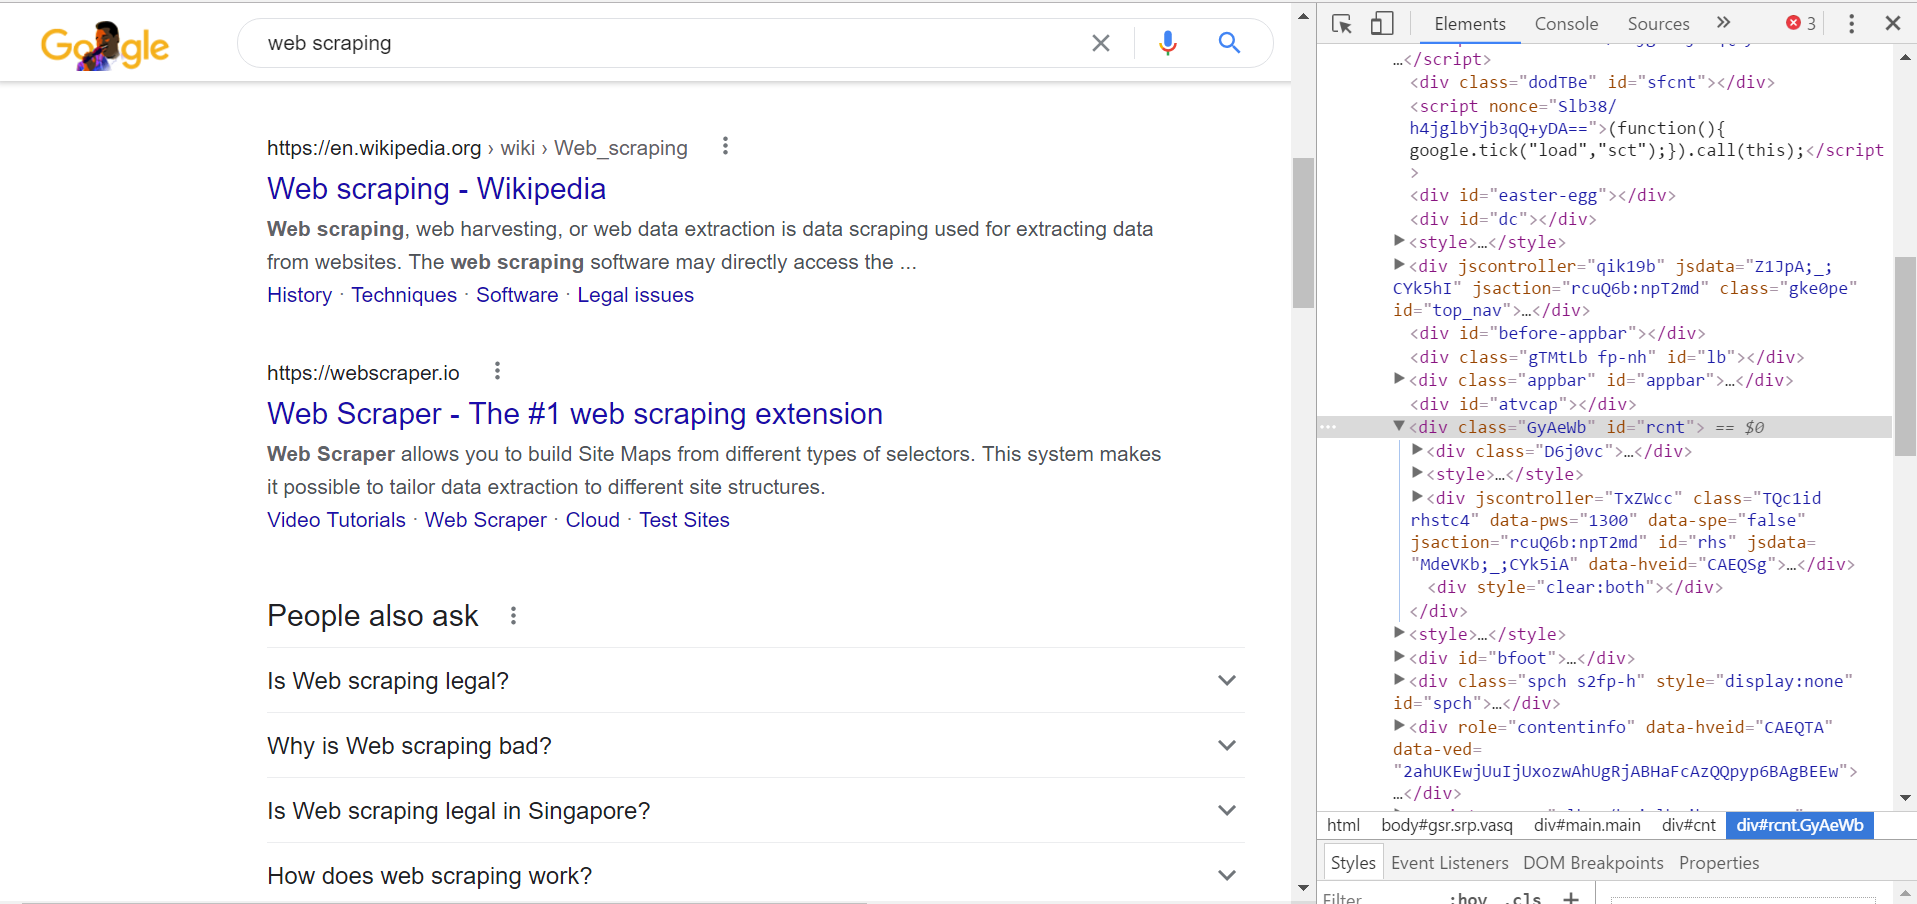 HTML source code for Google.com search query webpage